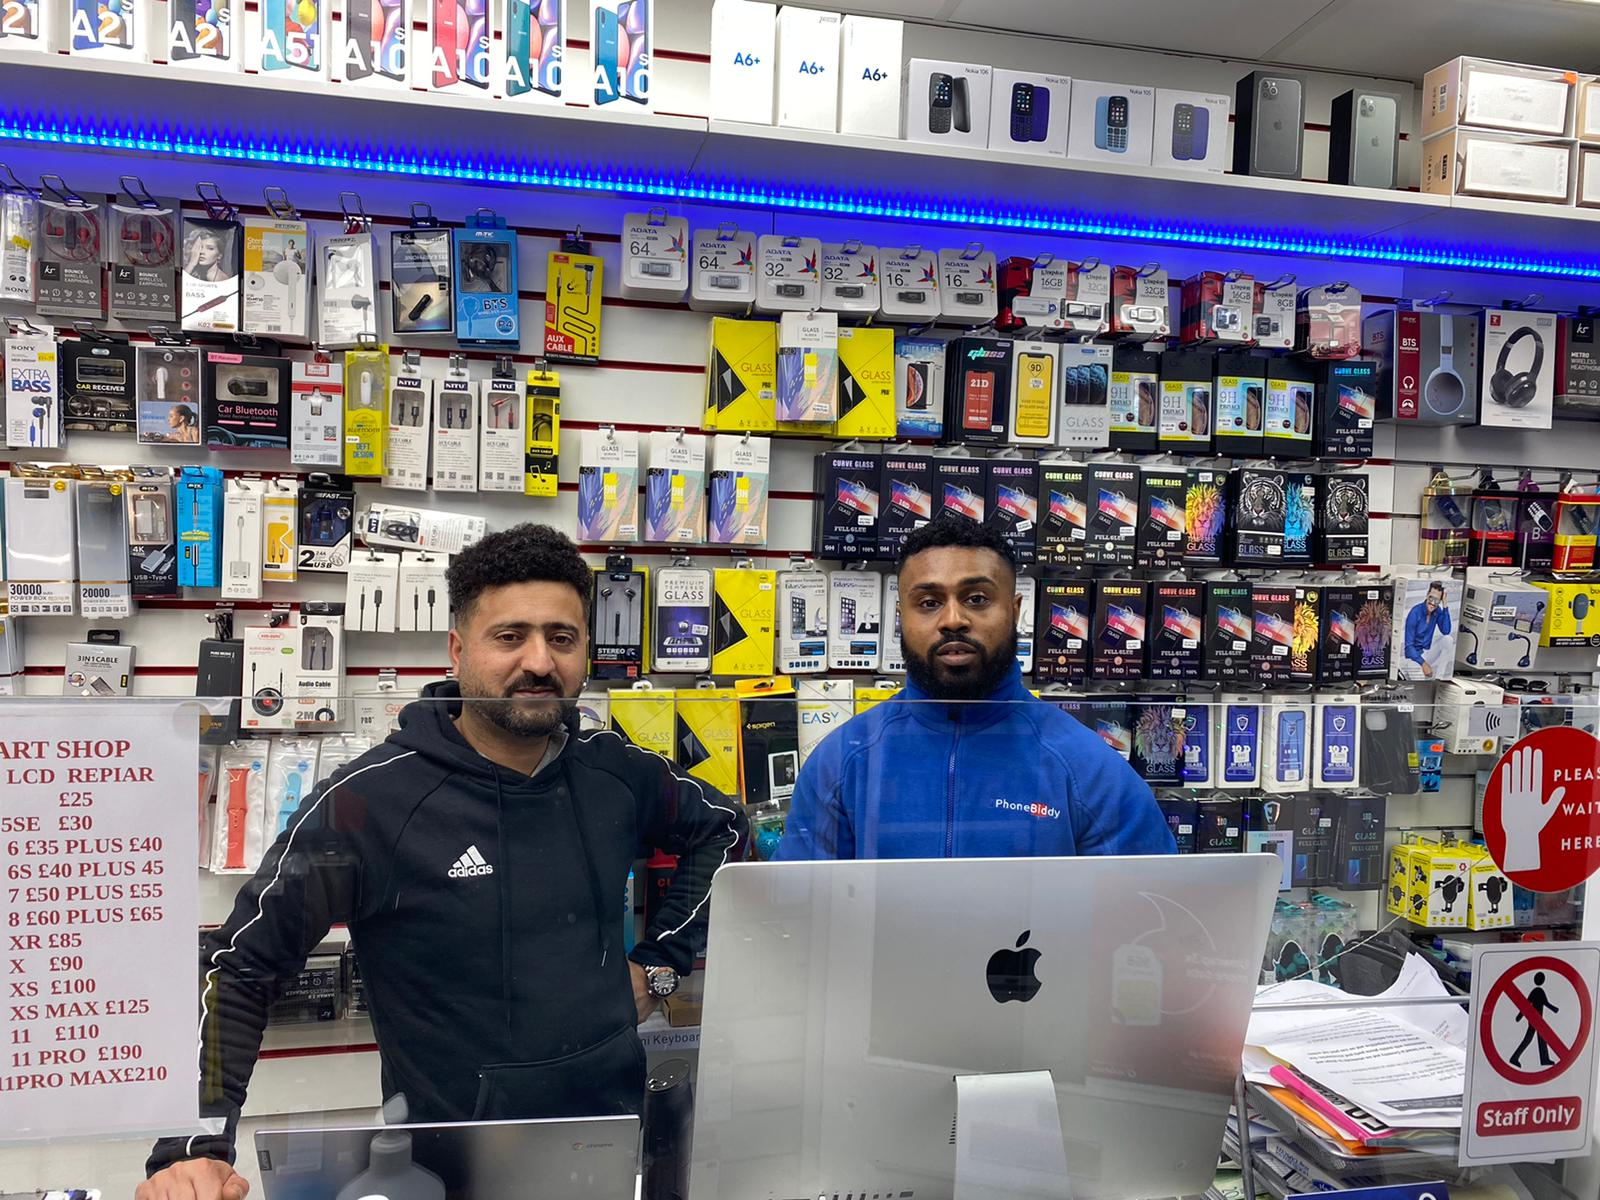 location: Bournemouth, store: smart shop, image may contain: two men in a phone repair shop, samsung A10 smartphone, usb charger leads, front glass repair kit, apple imac